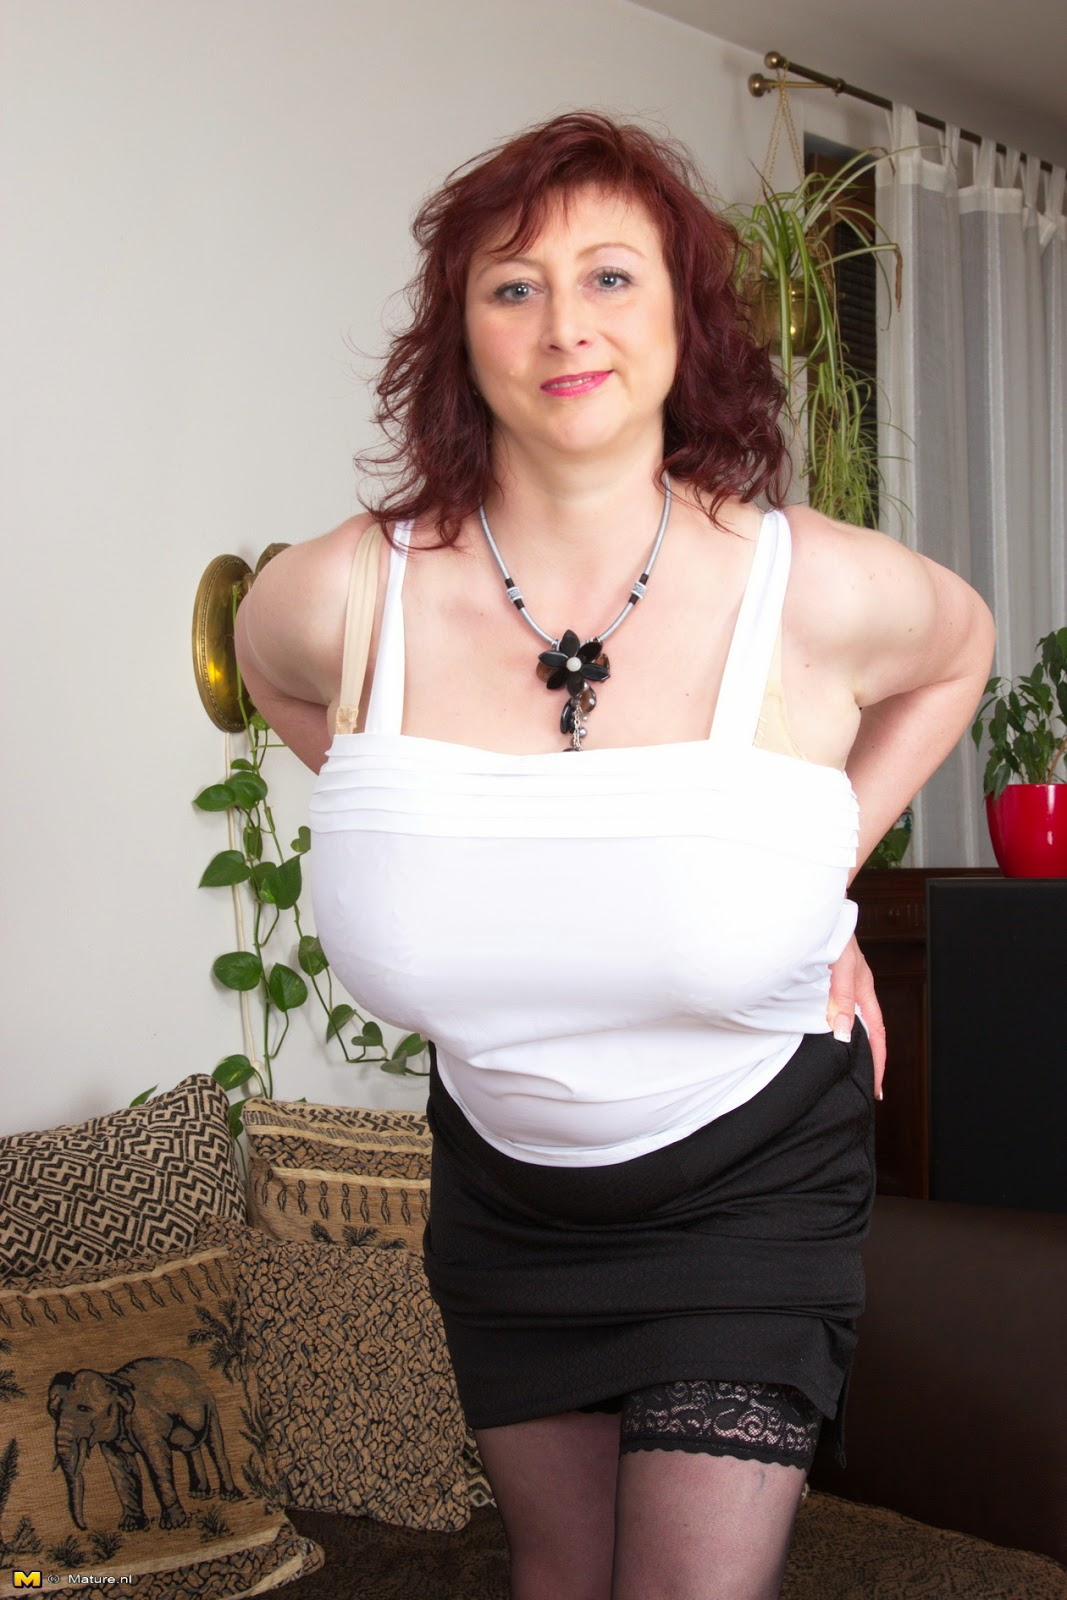 Mature redhead housewifes-3583